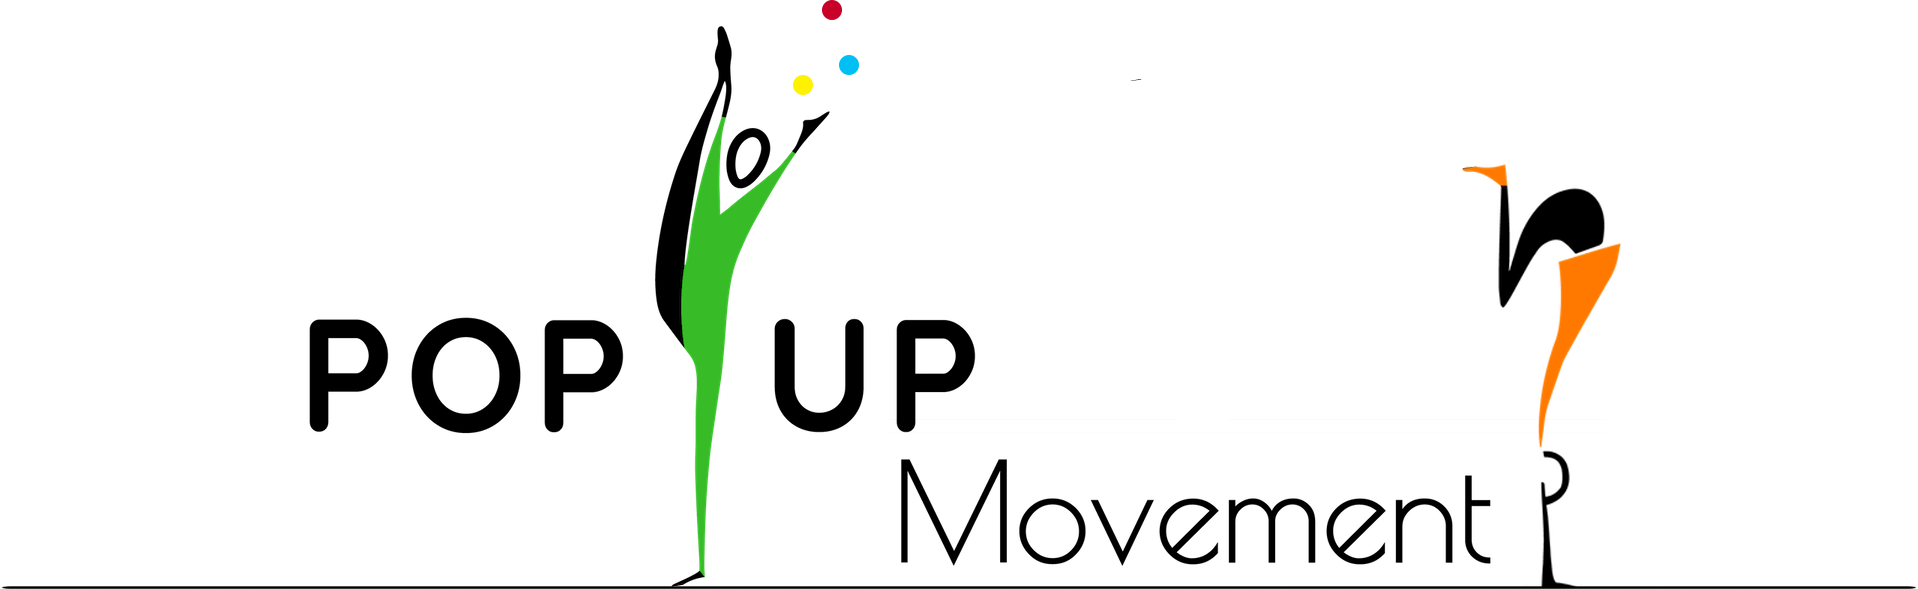 Pop-Up Movement